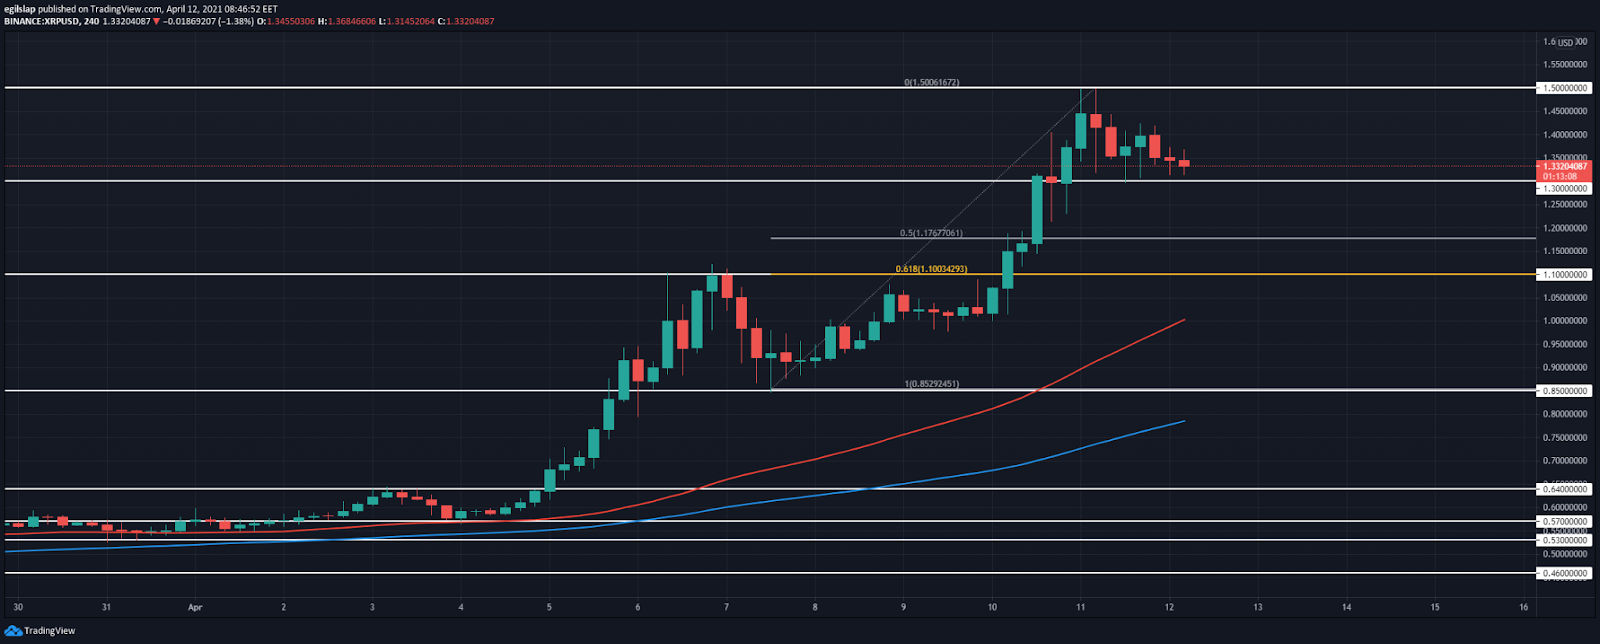 Ripple price prediction: Ripple retraces after setting ATH at $1.50, further downside expected today